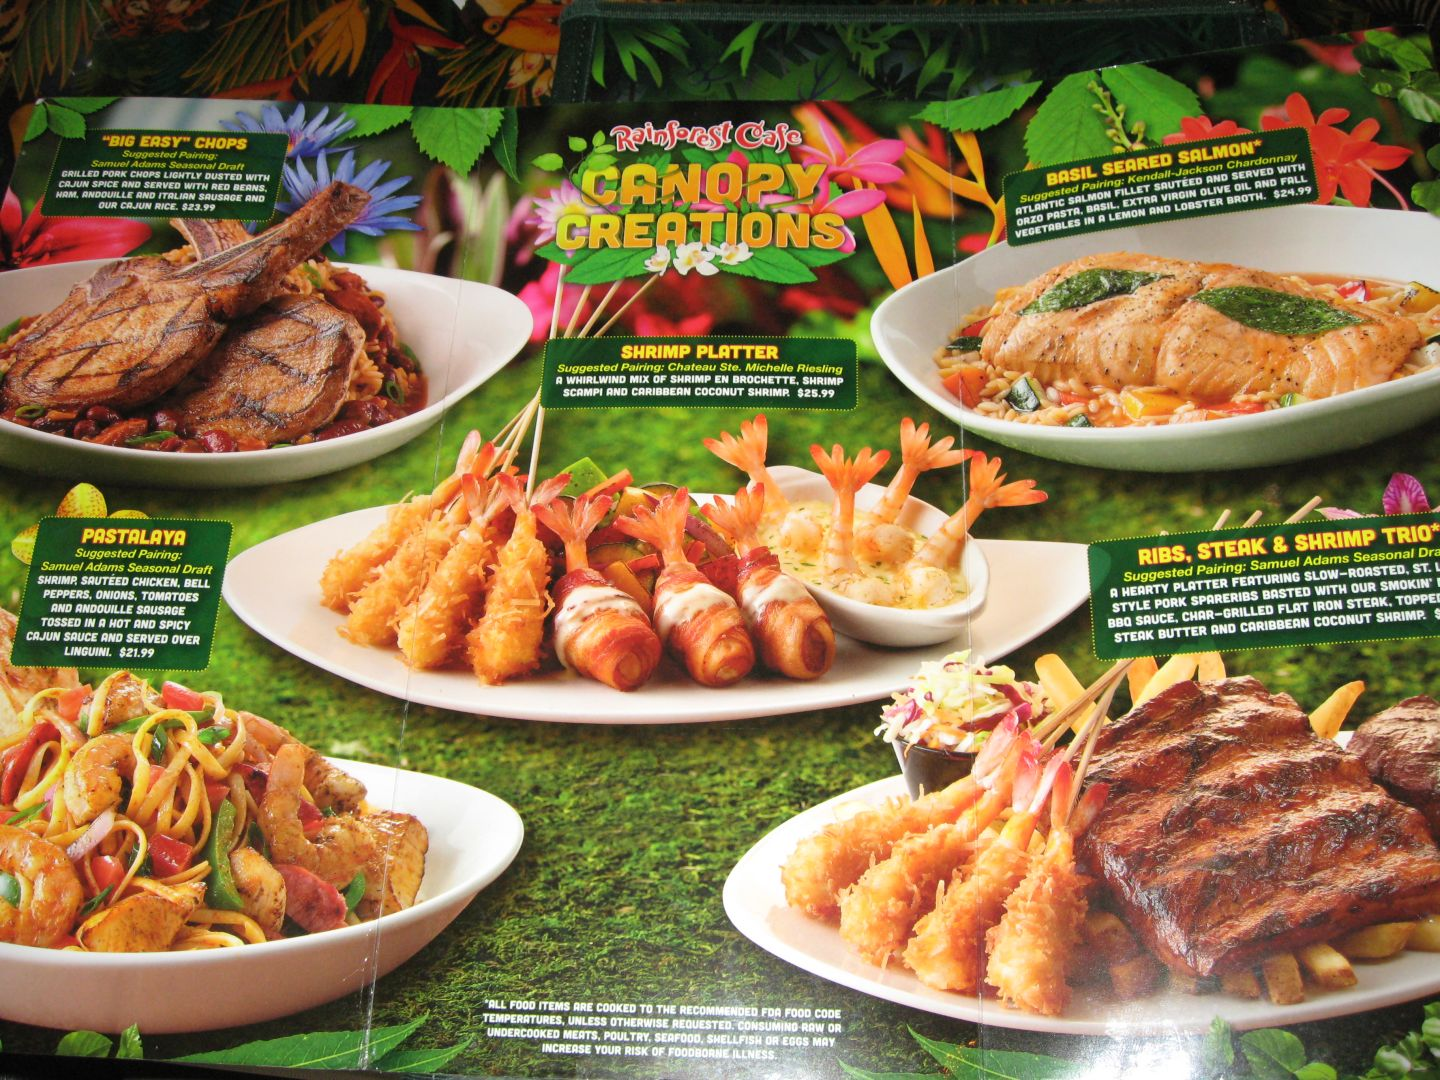 photograph regarding Rainforest Cafe Printable Coupon identified as Rainforest restaurant downtown disney discount coupons 2018 - Palmetto